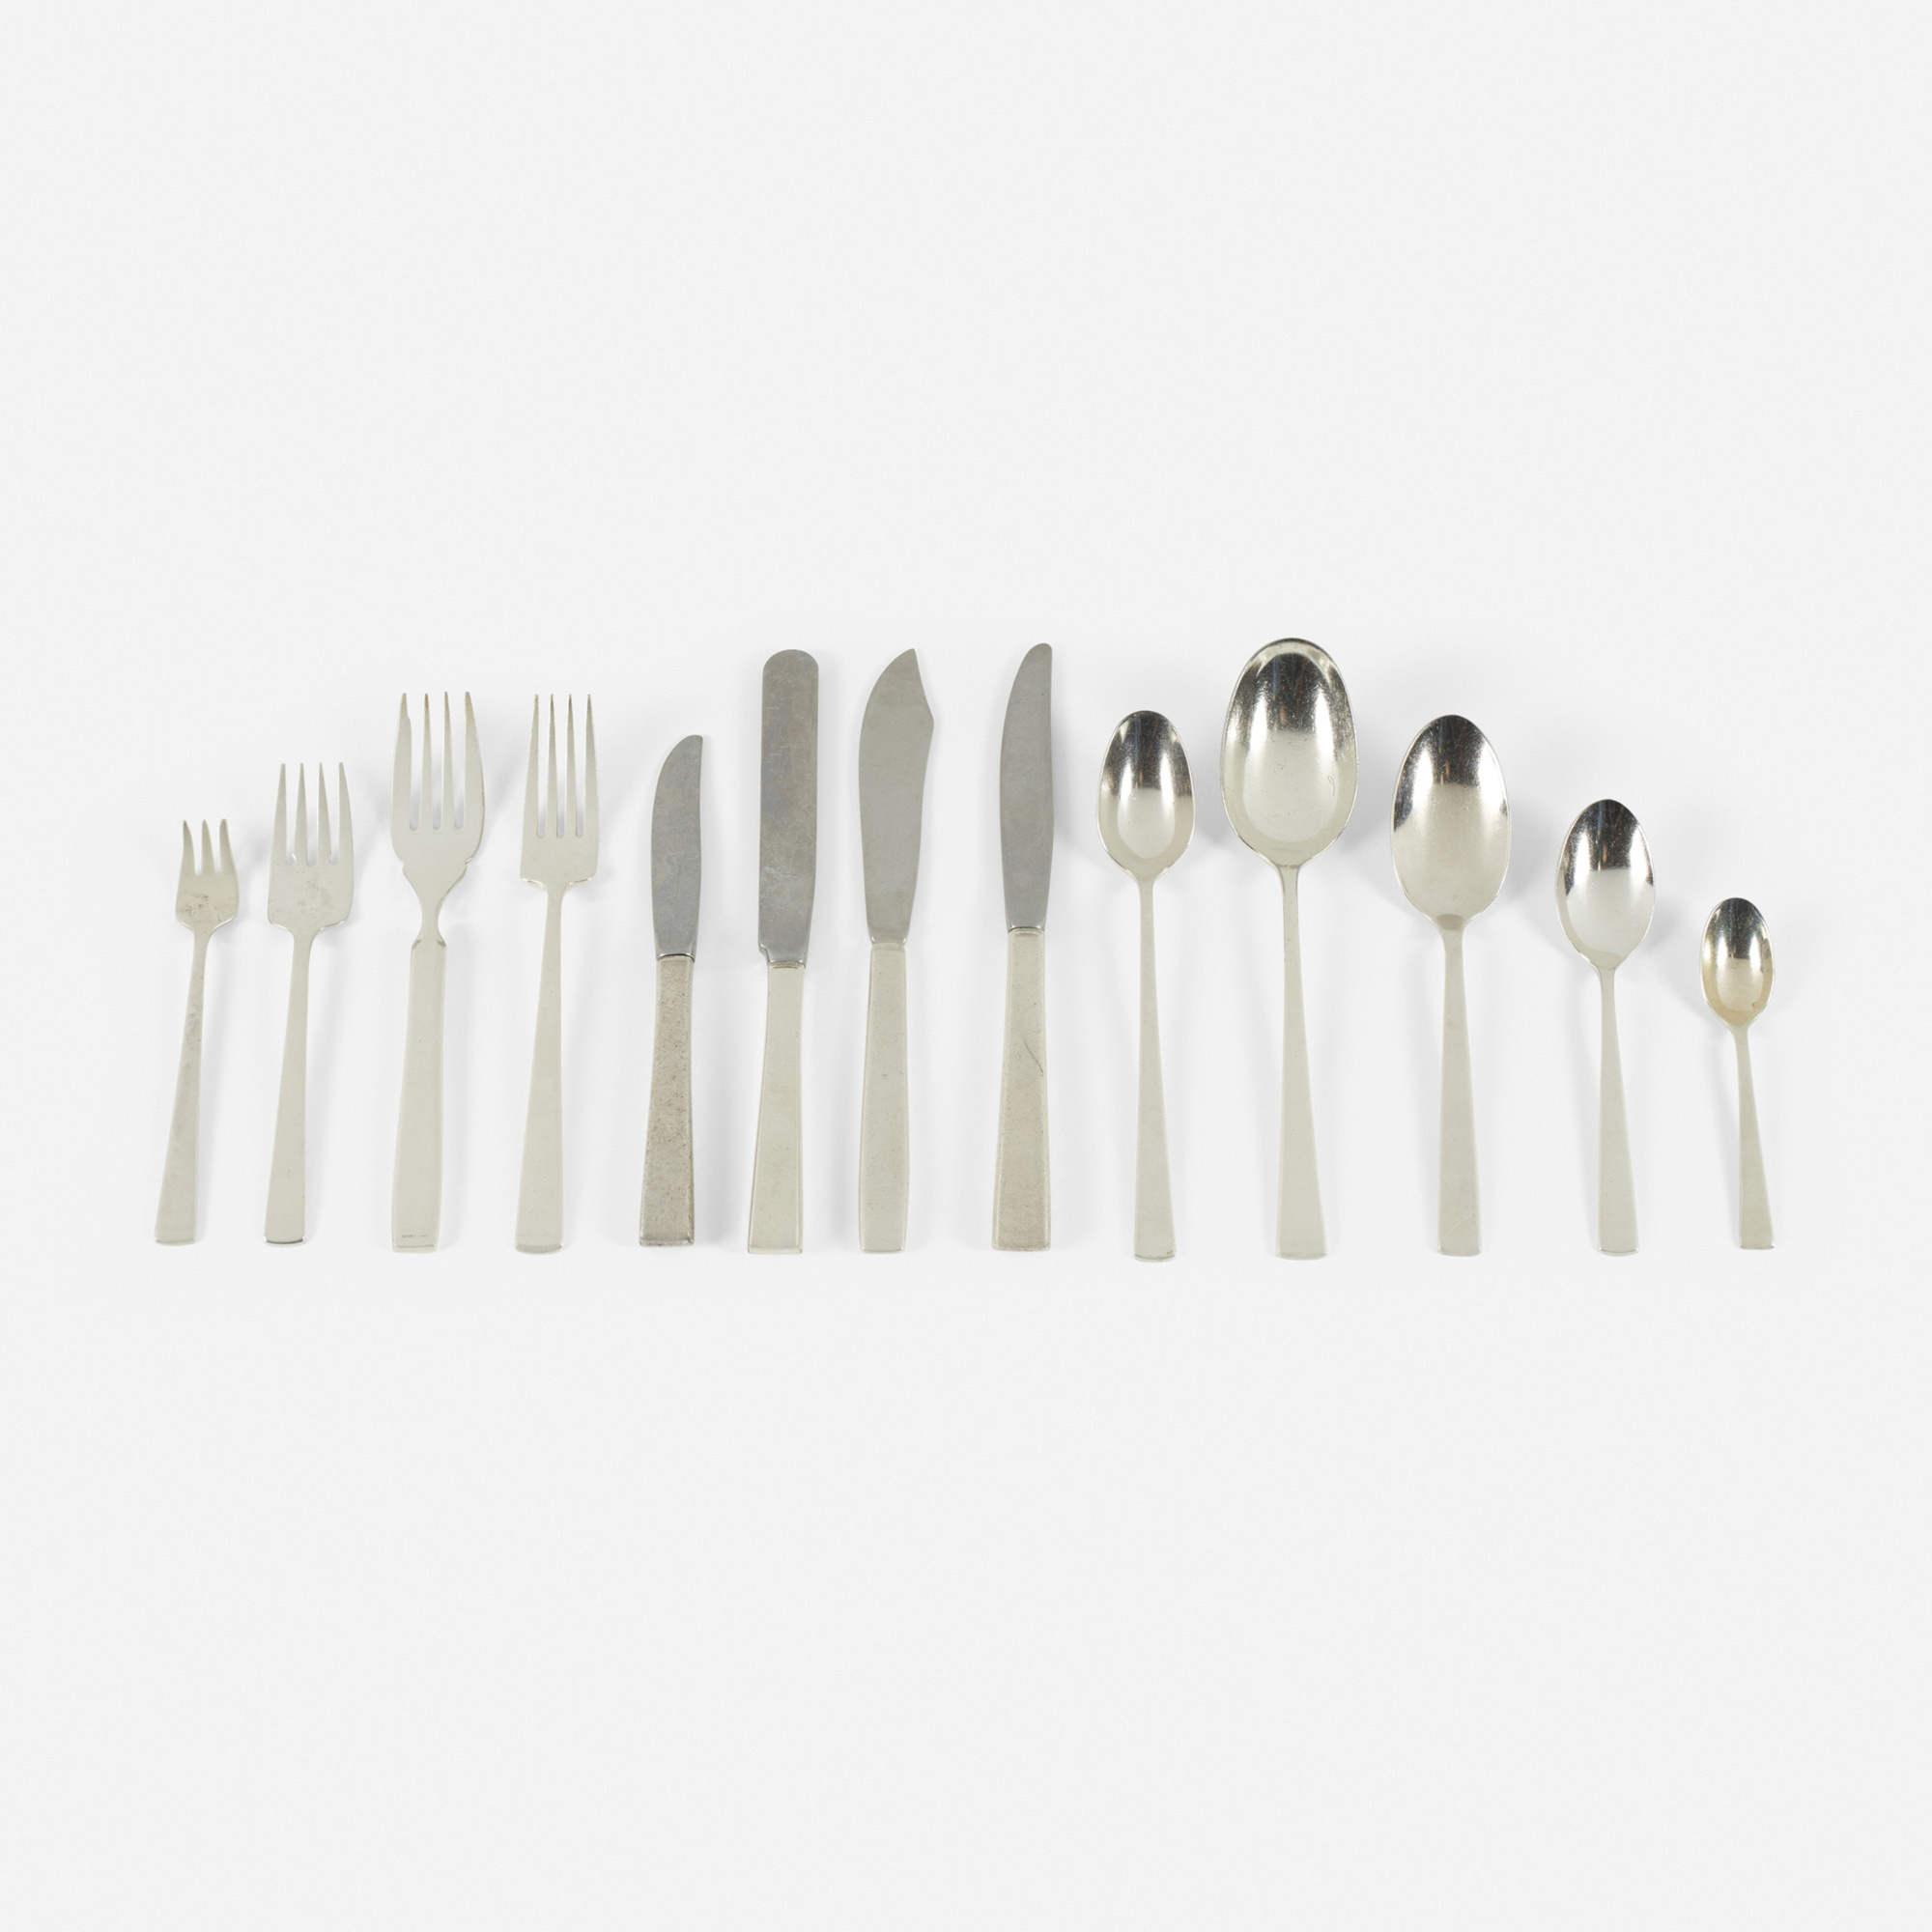 333: Garth and Ada Louise Huxtable / Four Seasons flatware, single service (1 of 1)